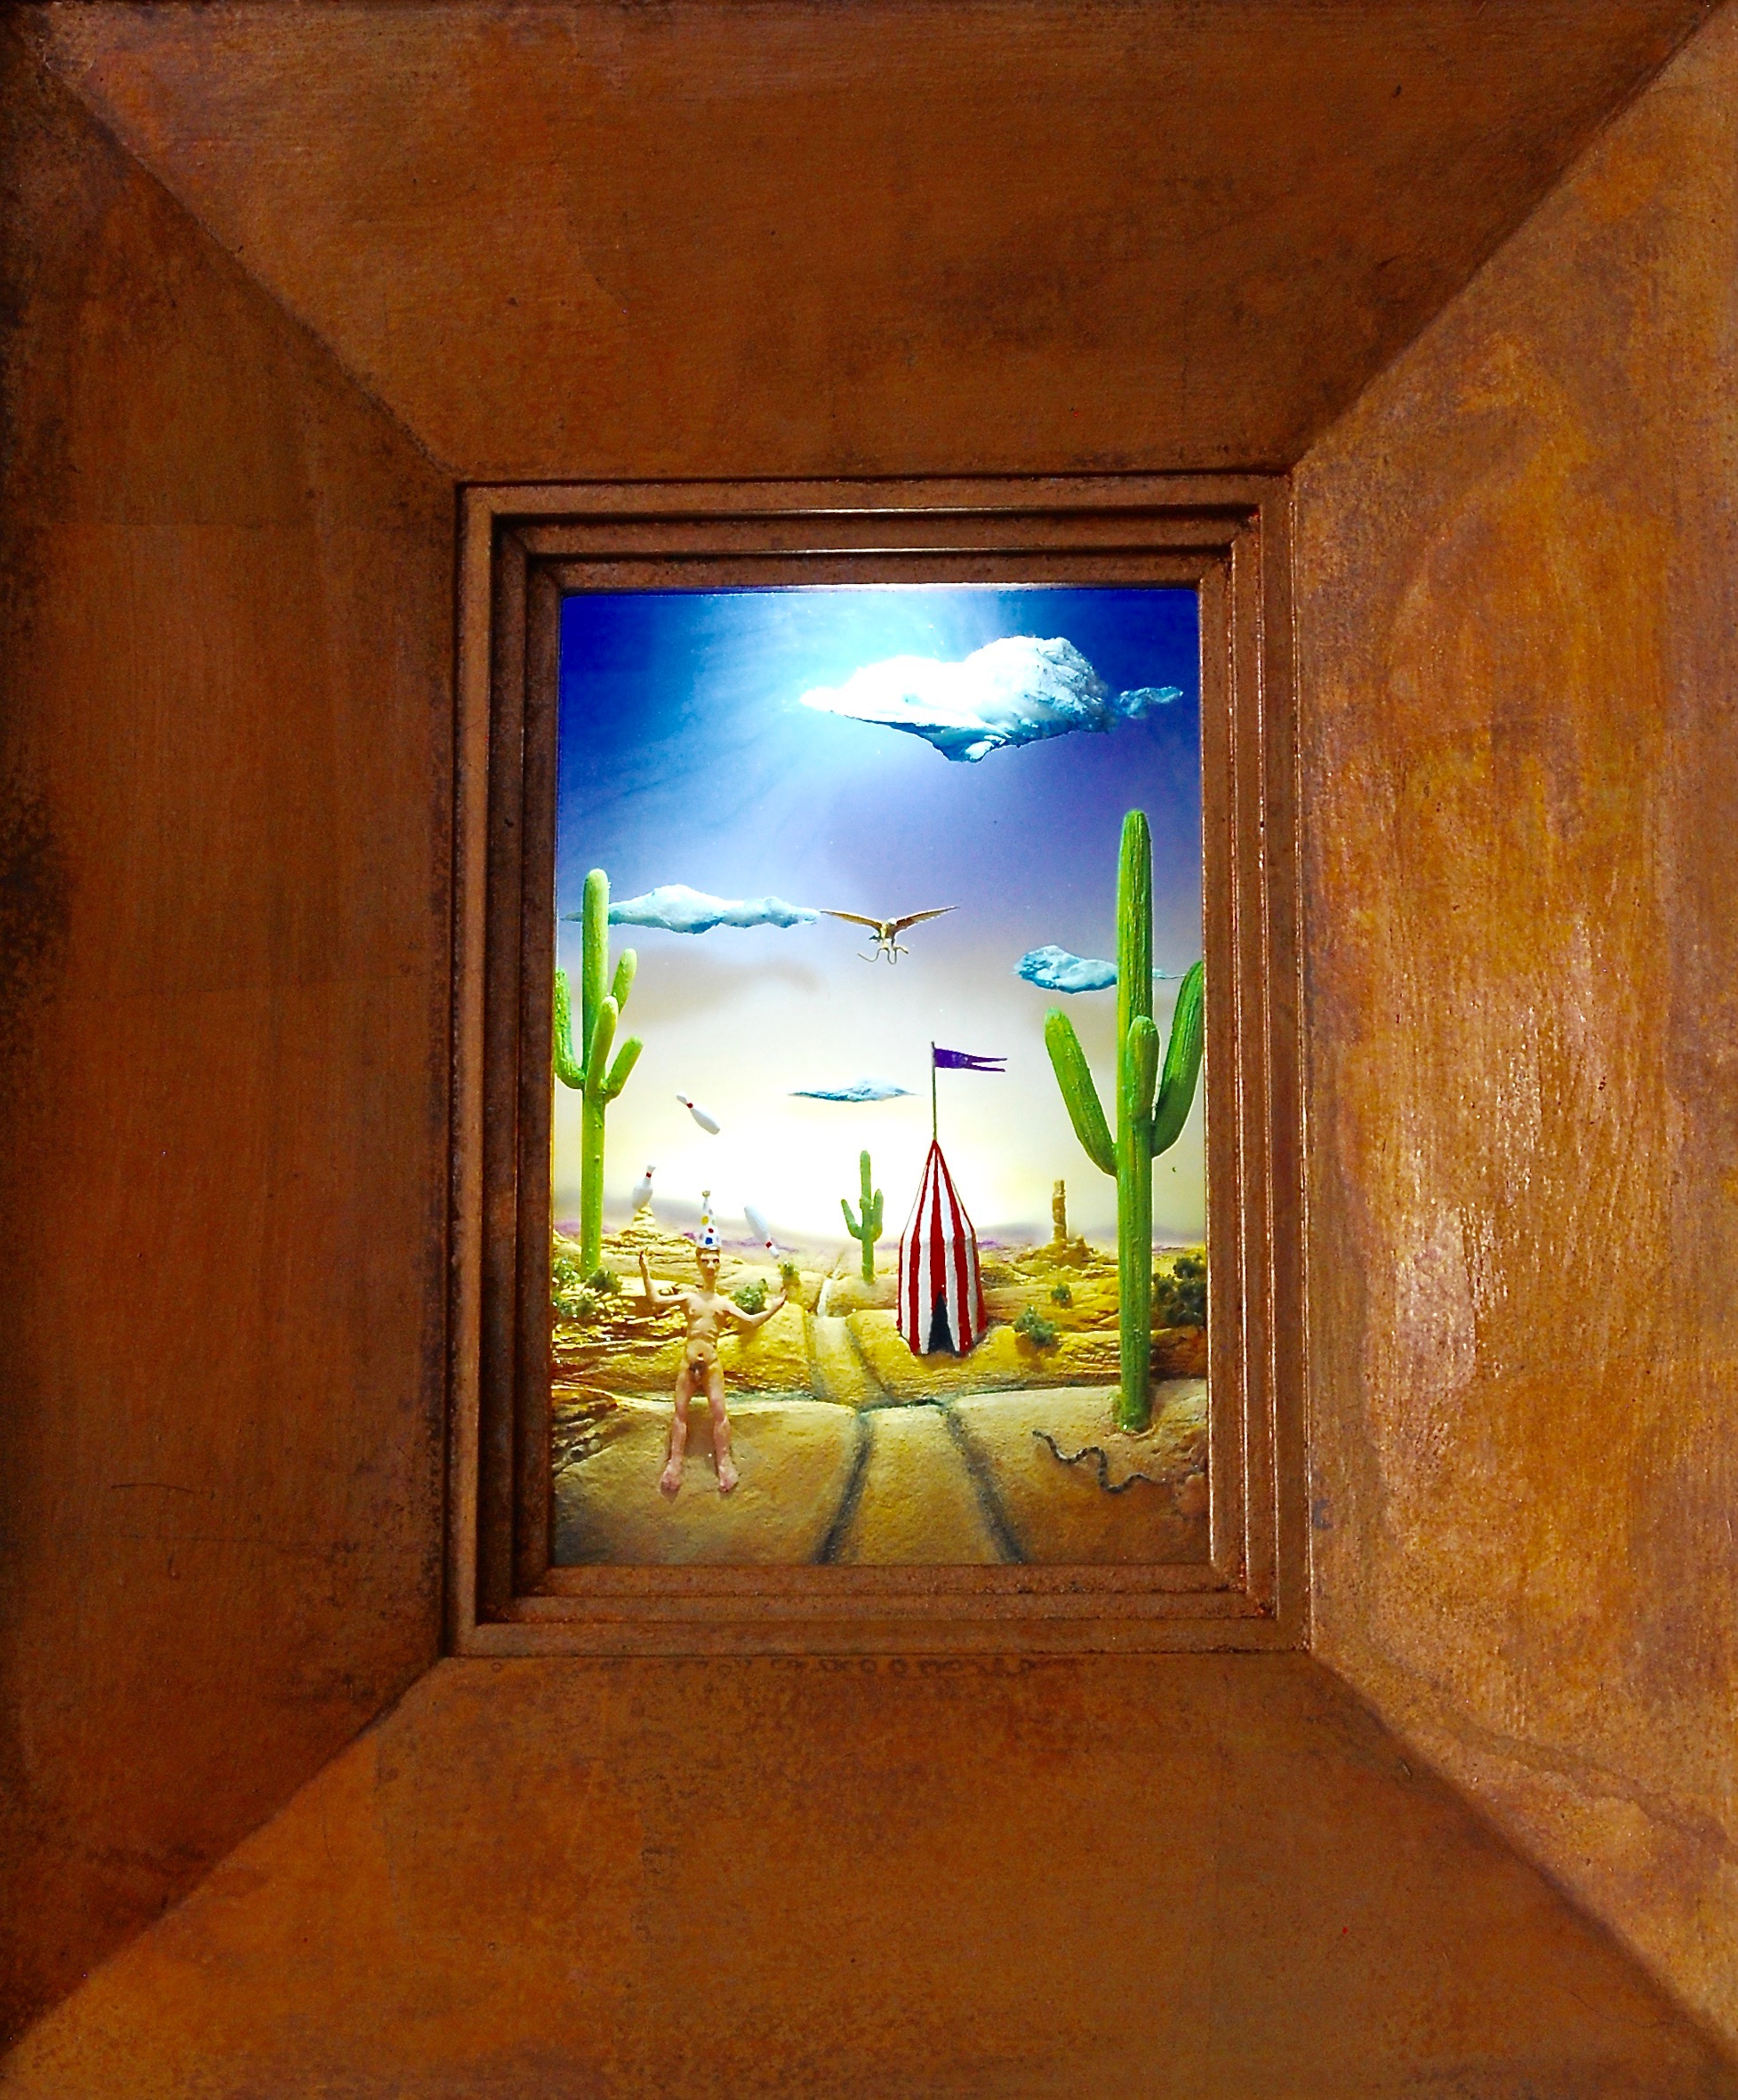 """Thomas Coffin - A Tenuous Existence, 20""""h x 16""""w x 5 3/4""""d, mixed media diorama encased in acrylic resin, wood frame, copper leaf"""